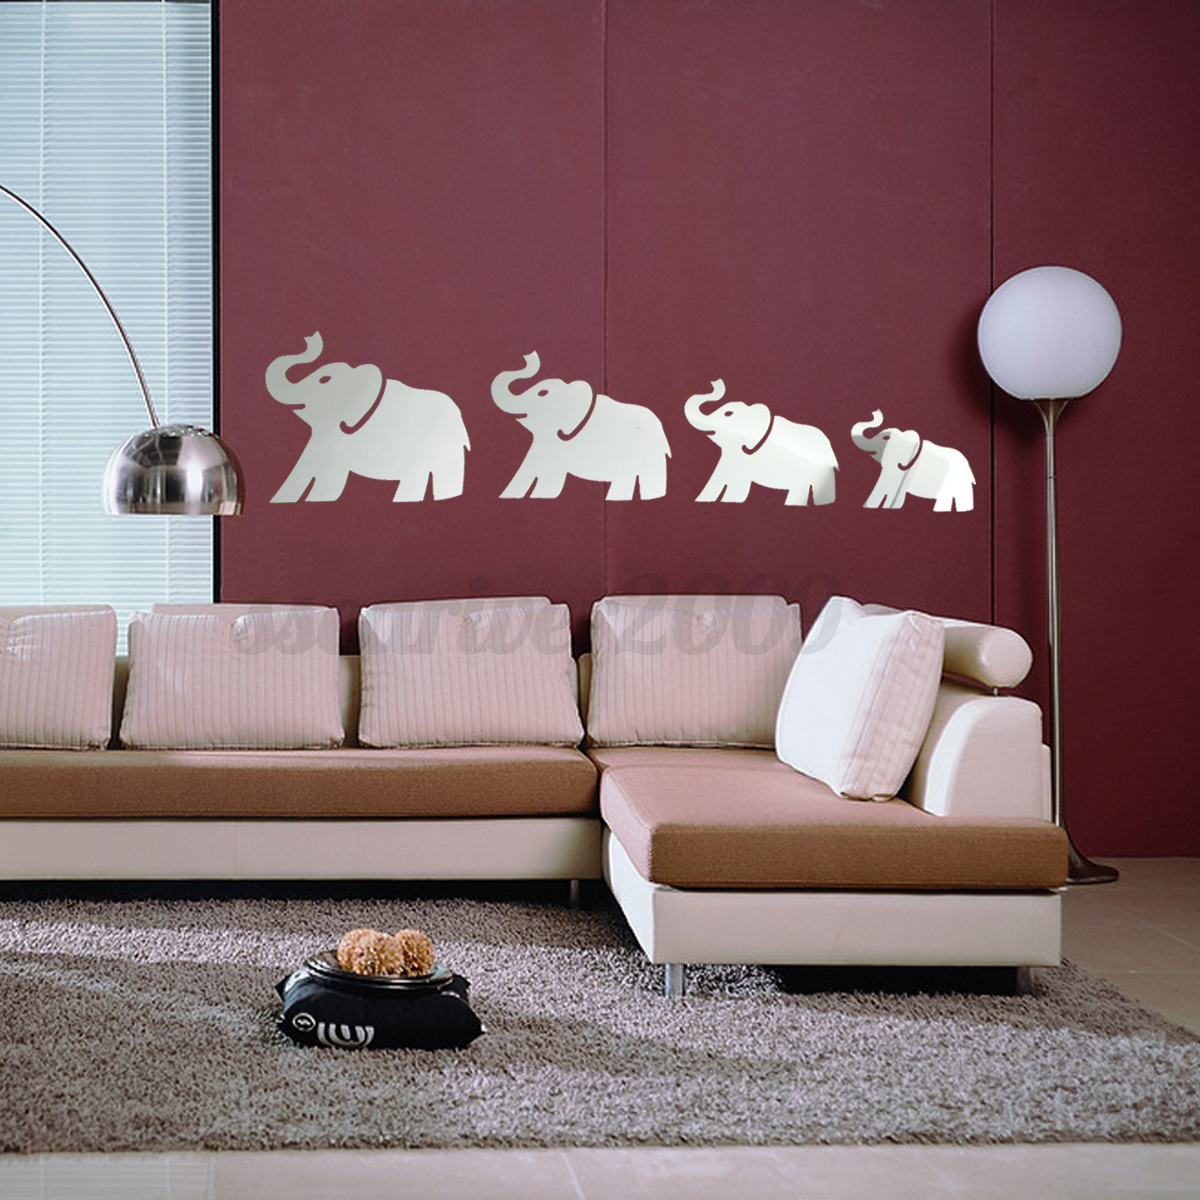 Diy 3d silver mirror surface wall sticker mural decal art for Diy wall photo mural